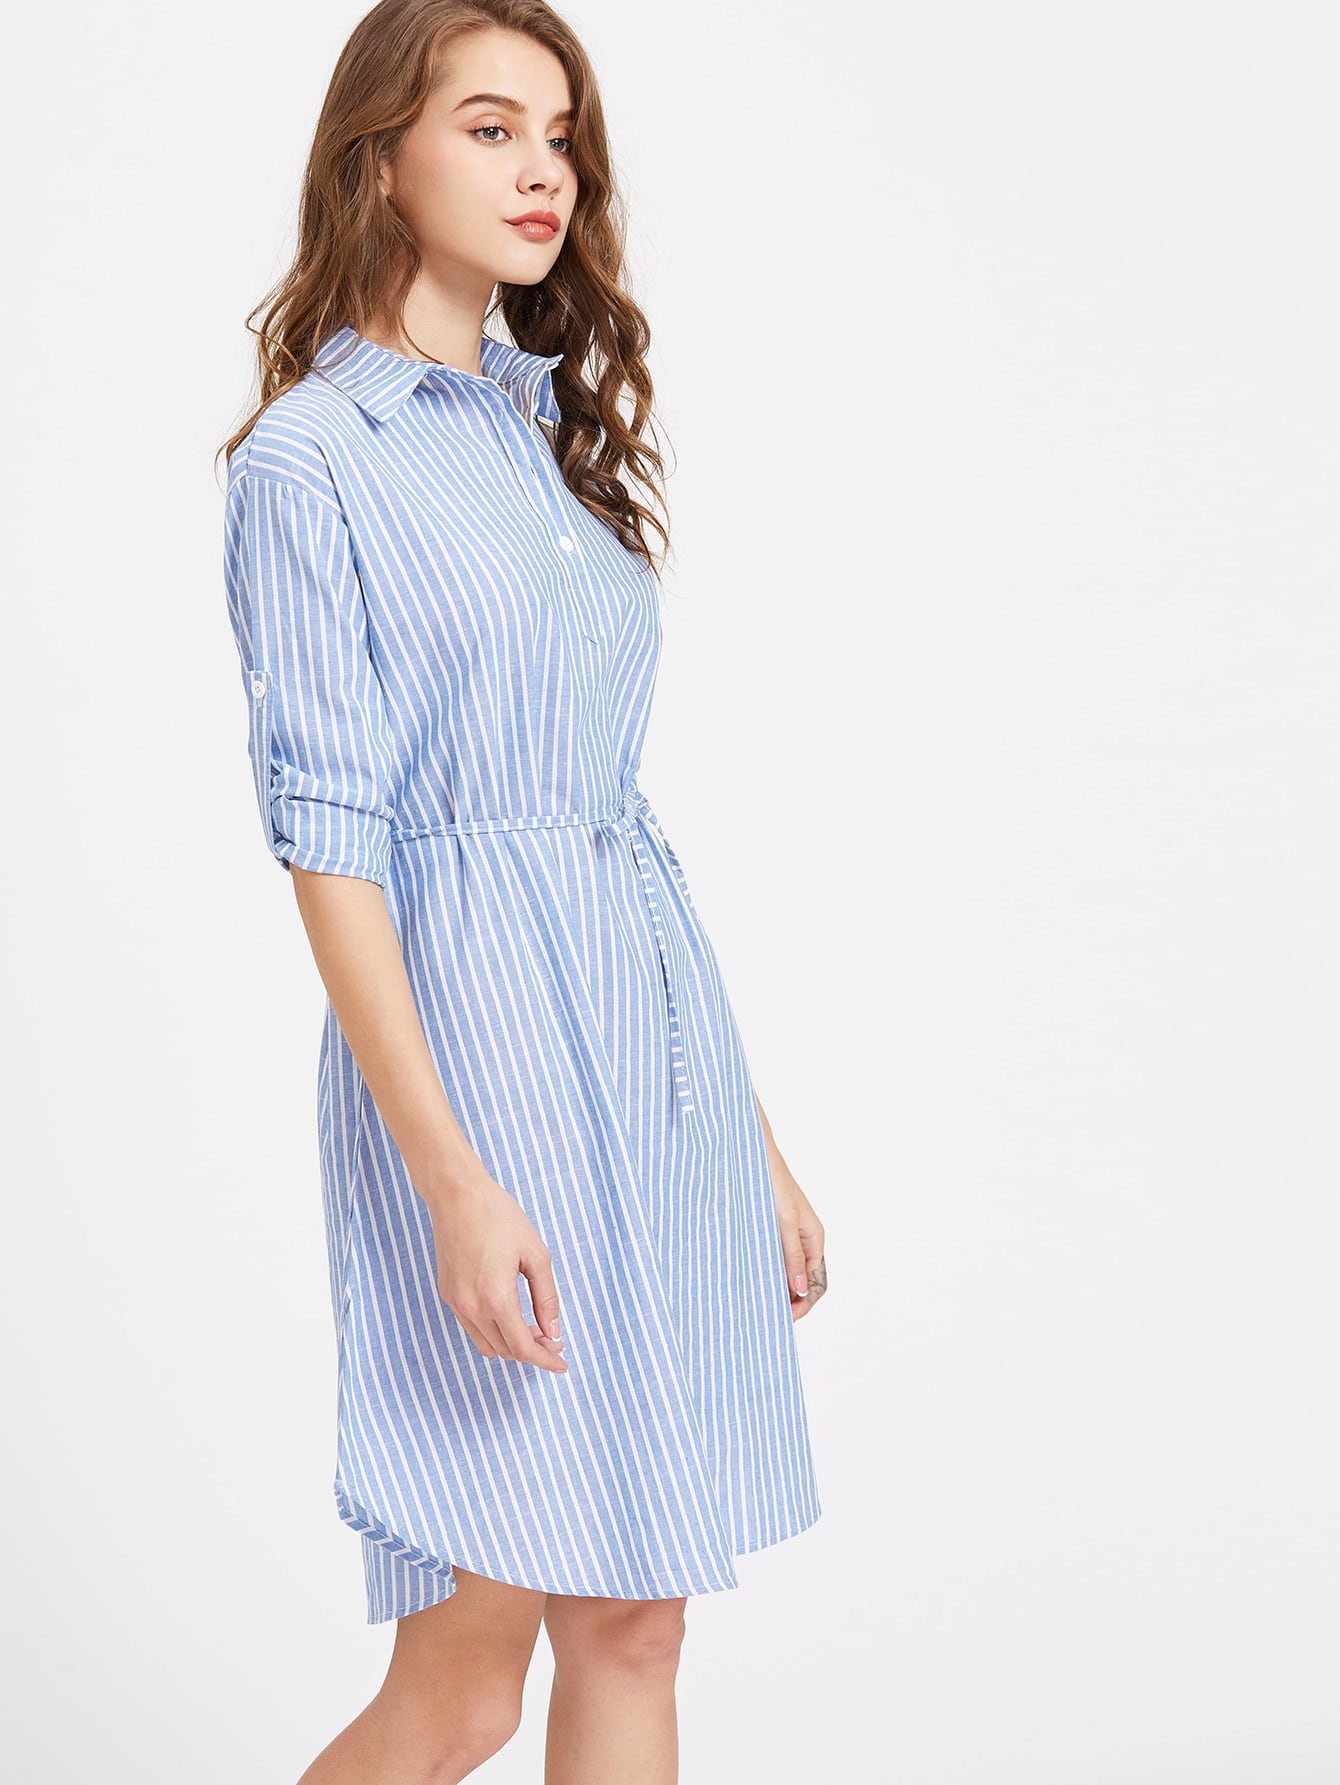 Vertical striped roll up sleeve self tie shirt dress for Vertical striped dress shirt